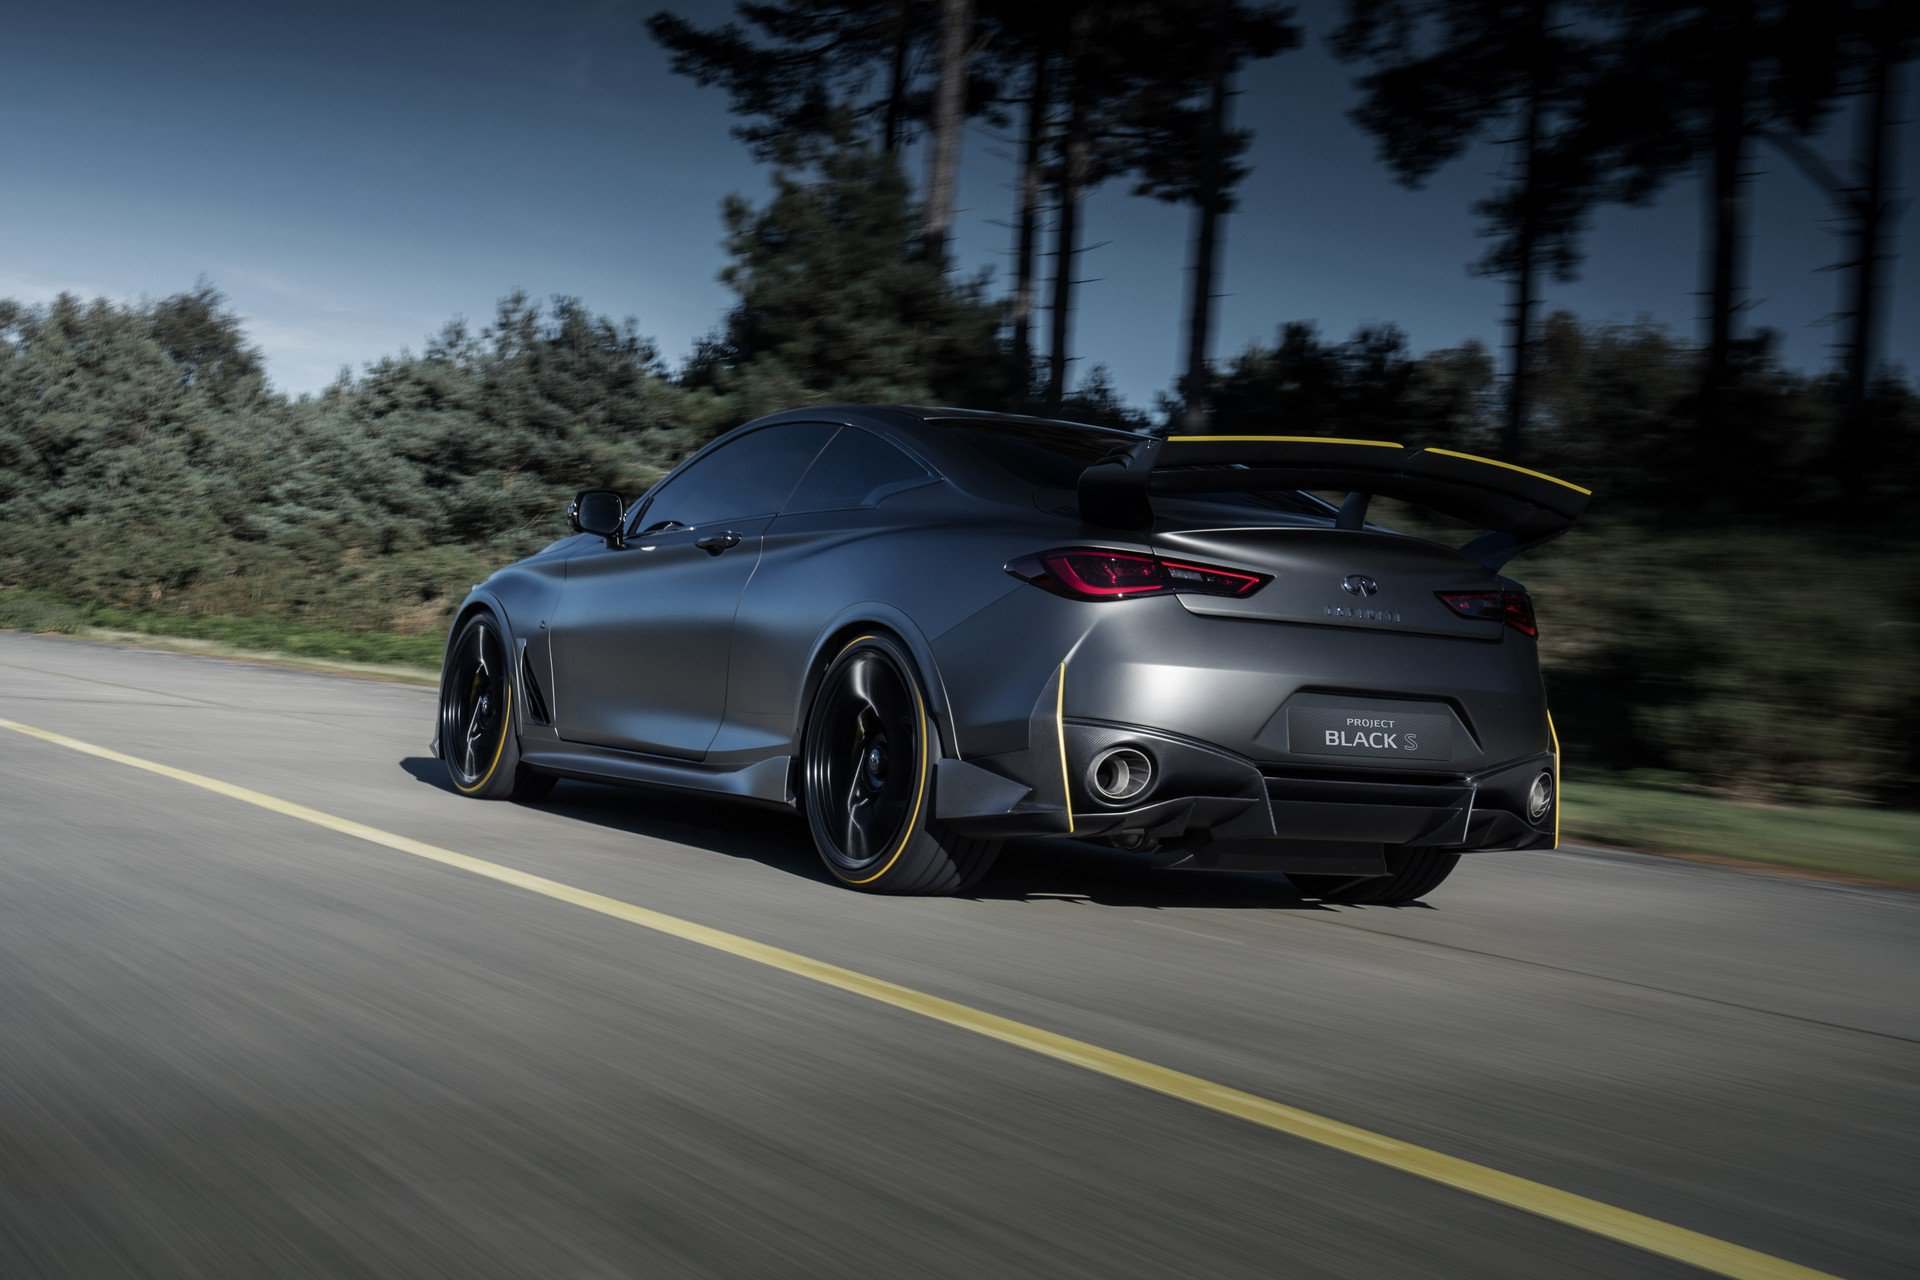 Infiniti Project Black S Prototype (40)